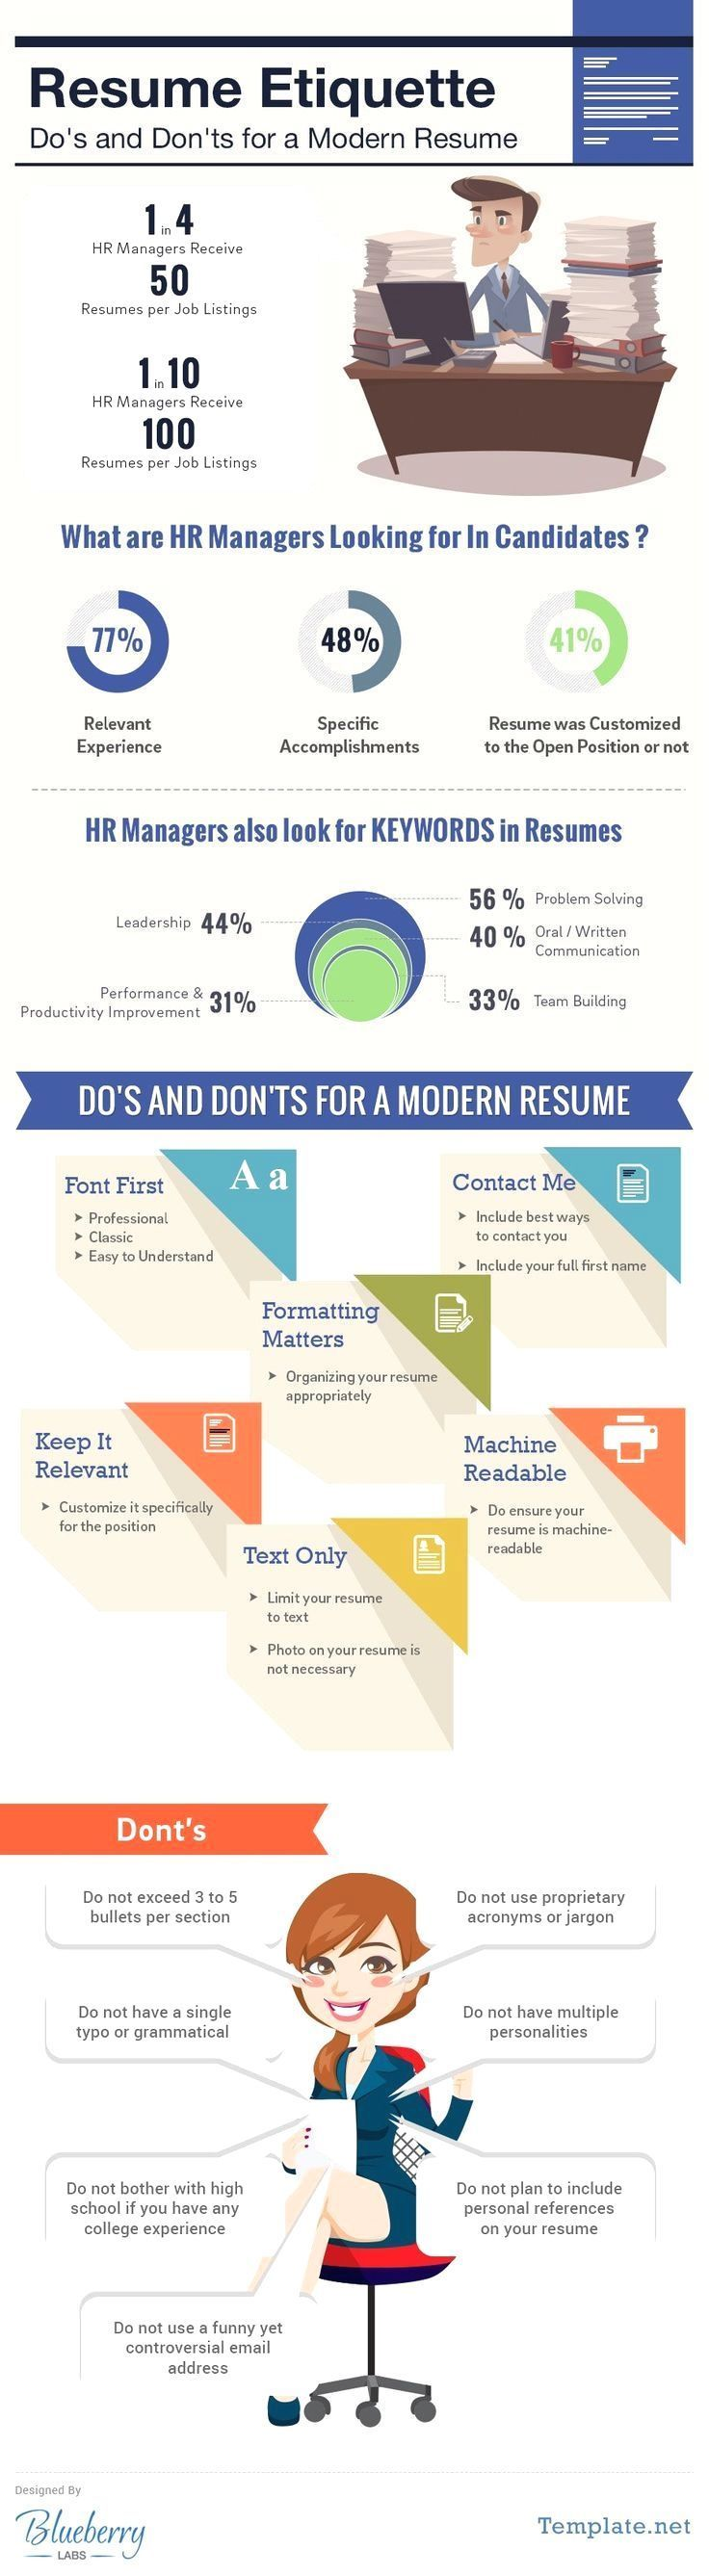 A good resume should be standard for all job applicants